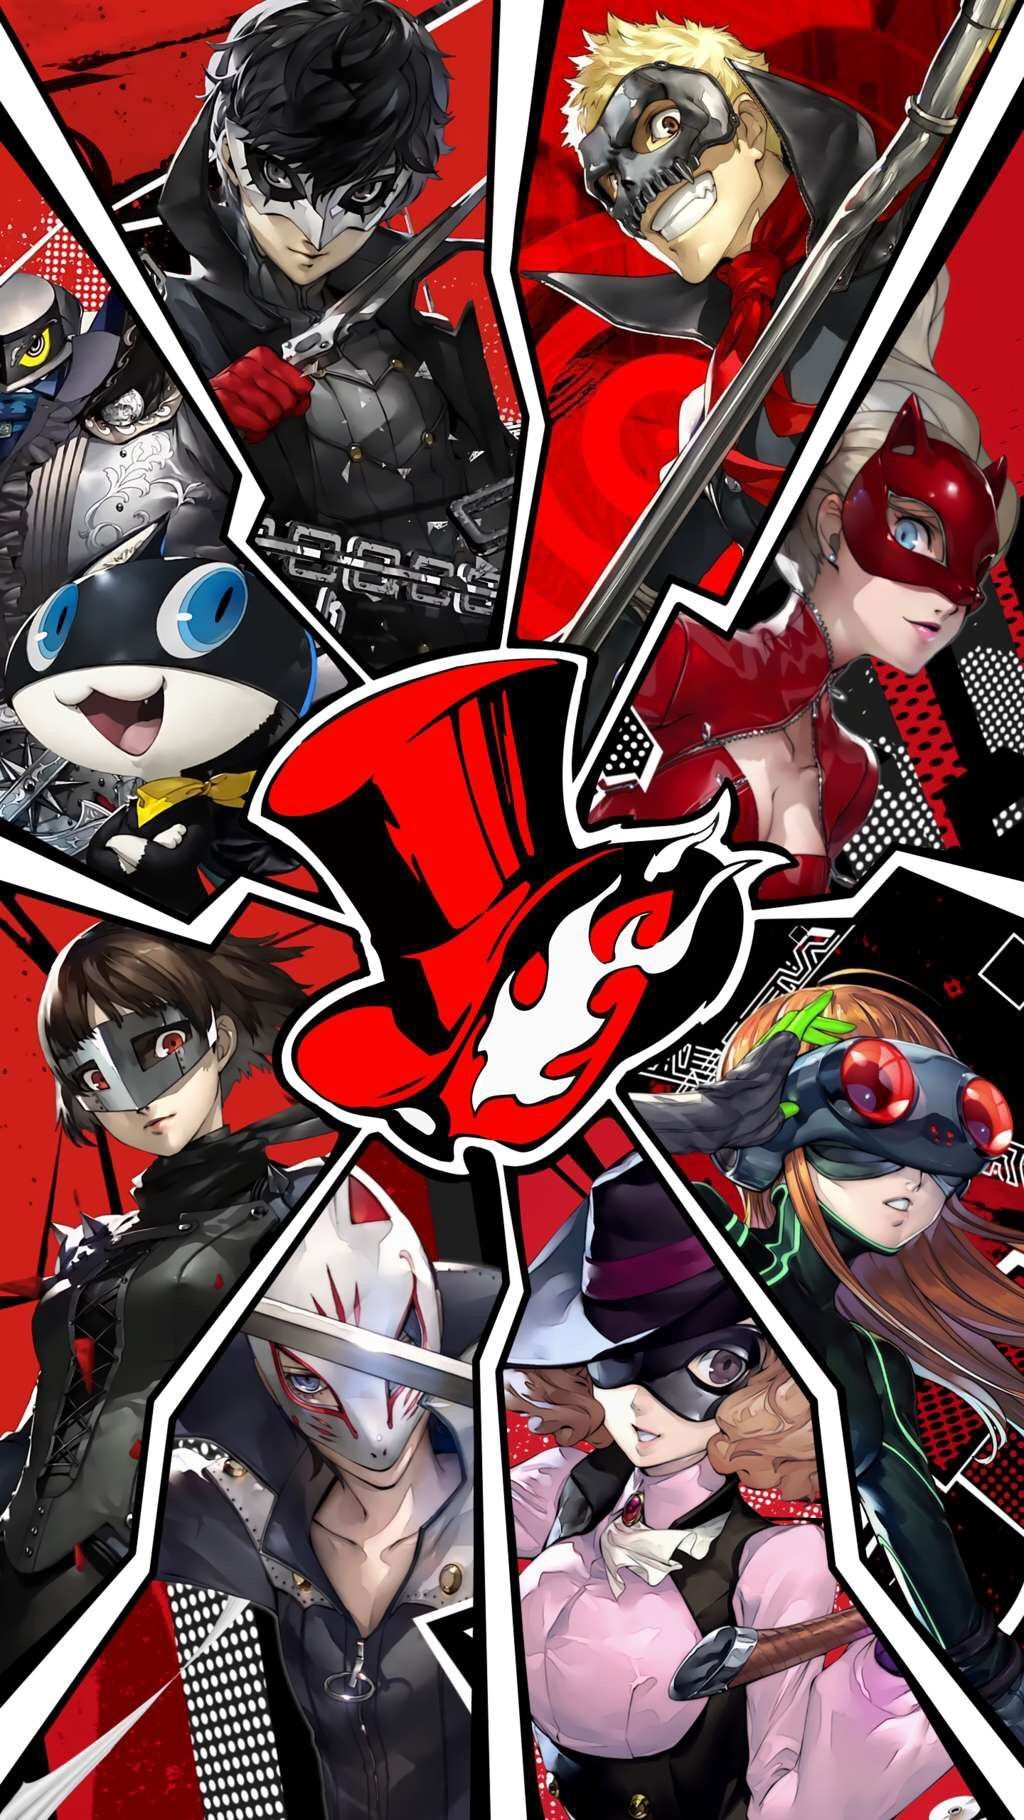 Persona 5 Wallpaper May Be My New Wallpaper X3 Persona 5